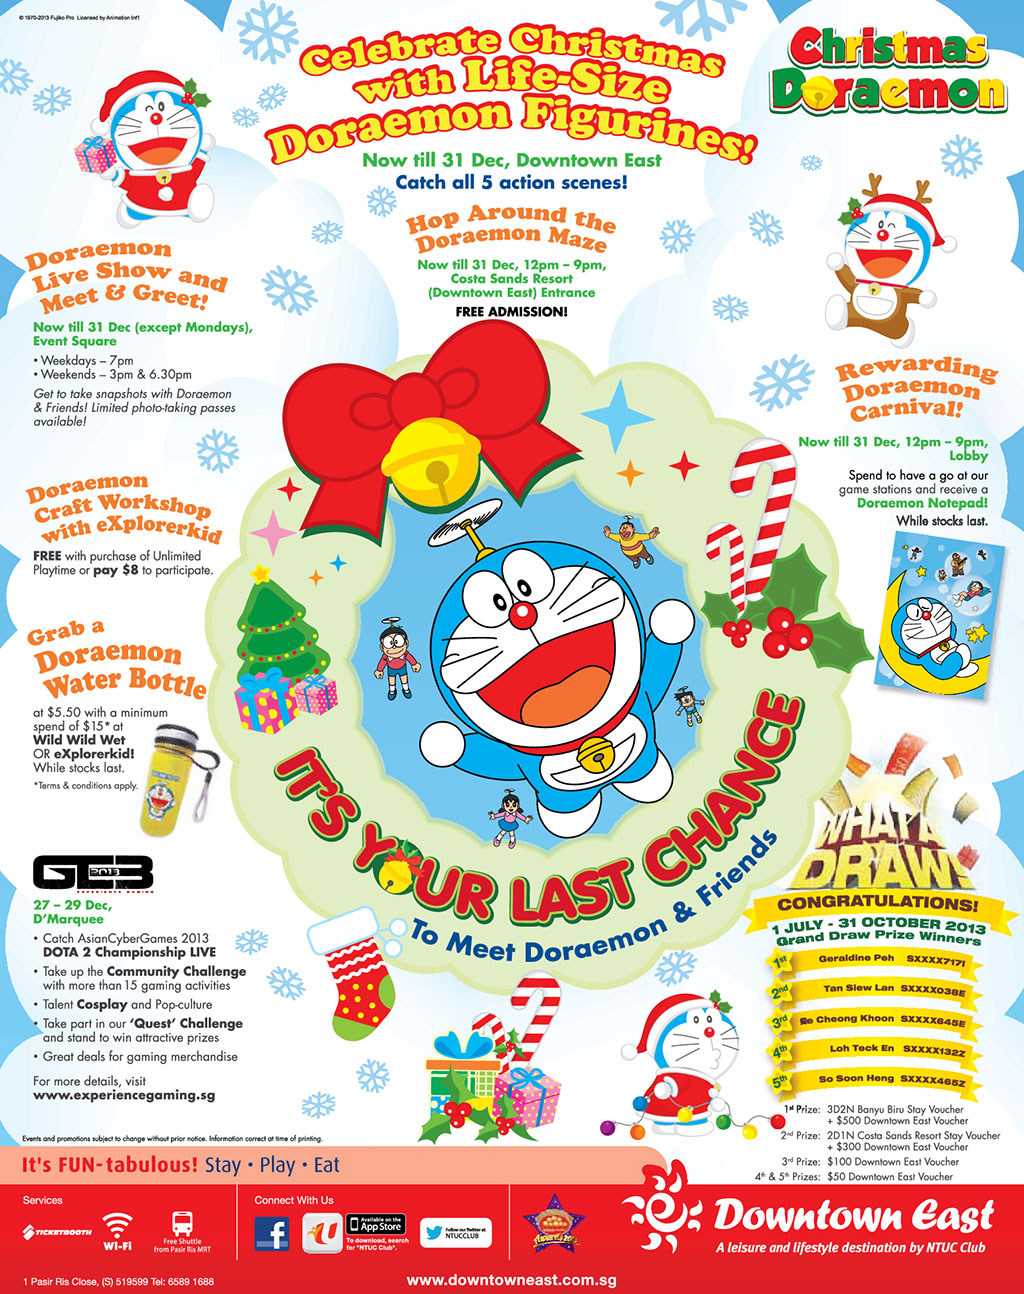 Downtown East Doraemon Festival 2013: Celebrate Christmas With Life-Size Doraemon Figures + GE3 Gaming Event